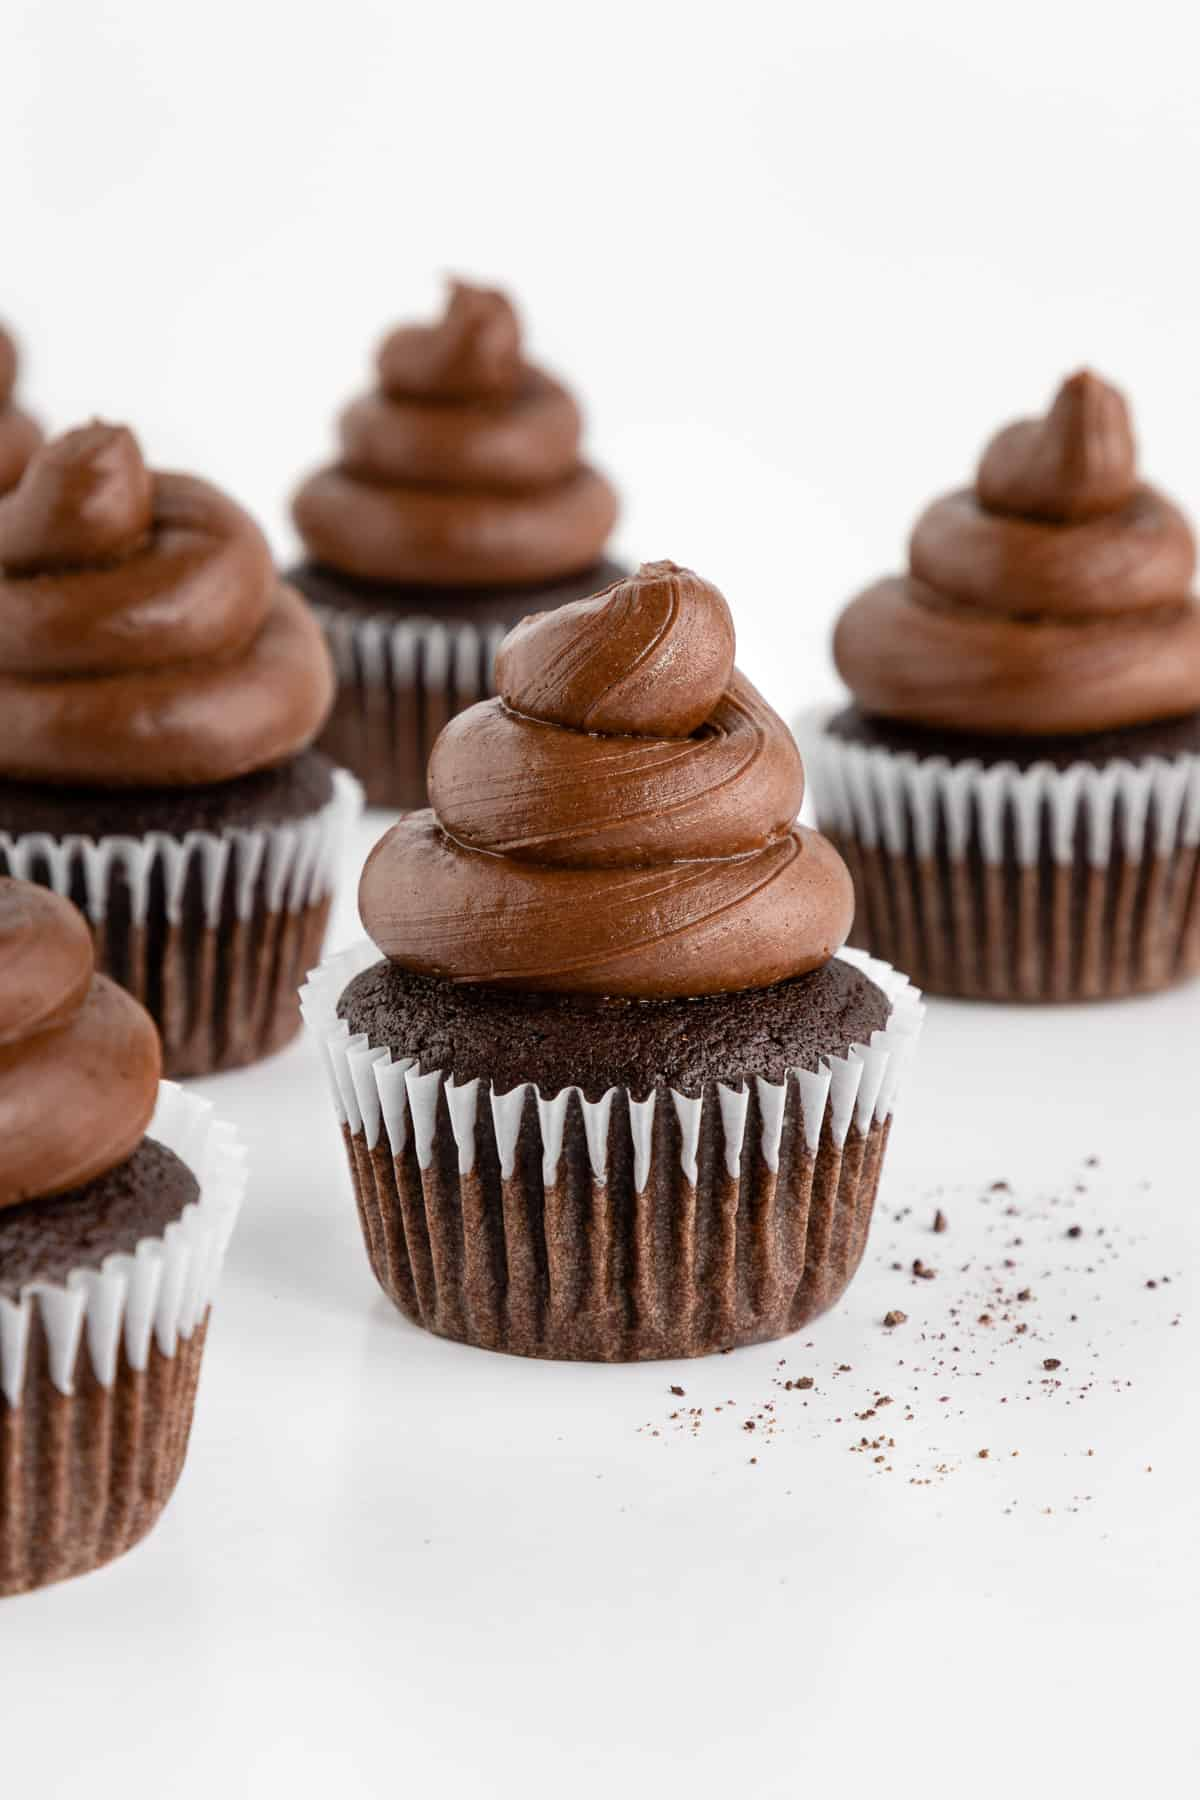 five vegan chocolate cupcakes with chocolate buttercream frosting on top